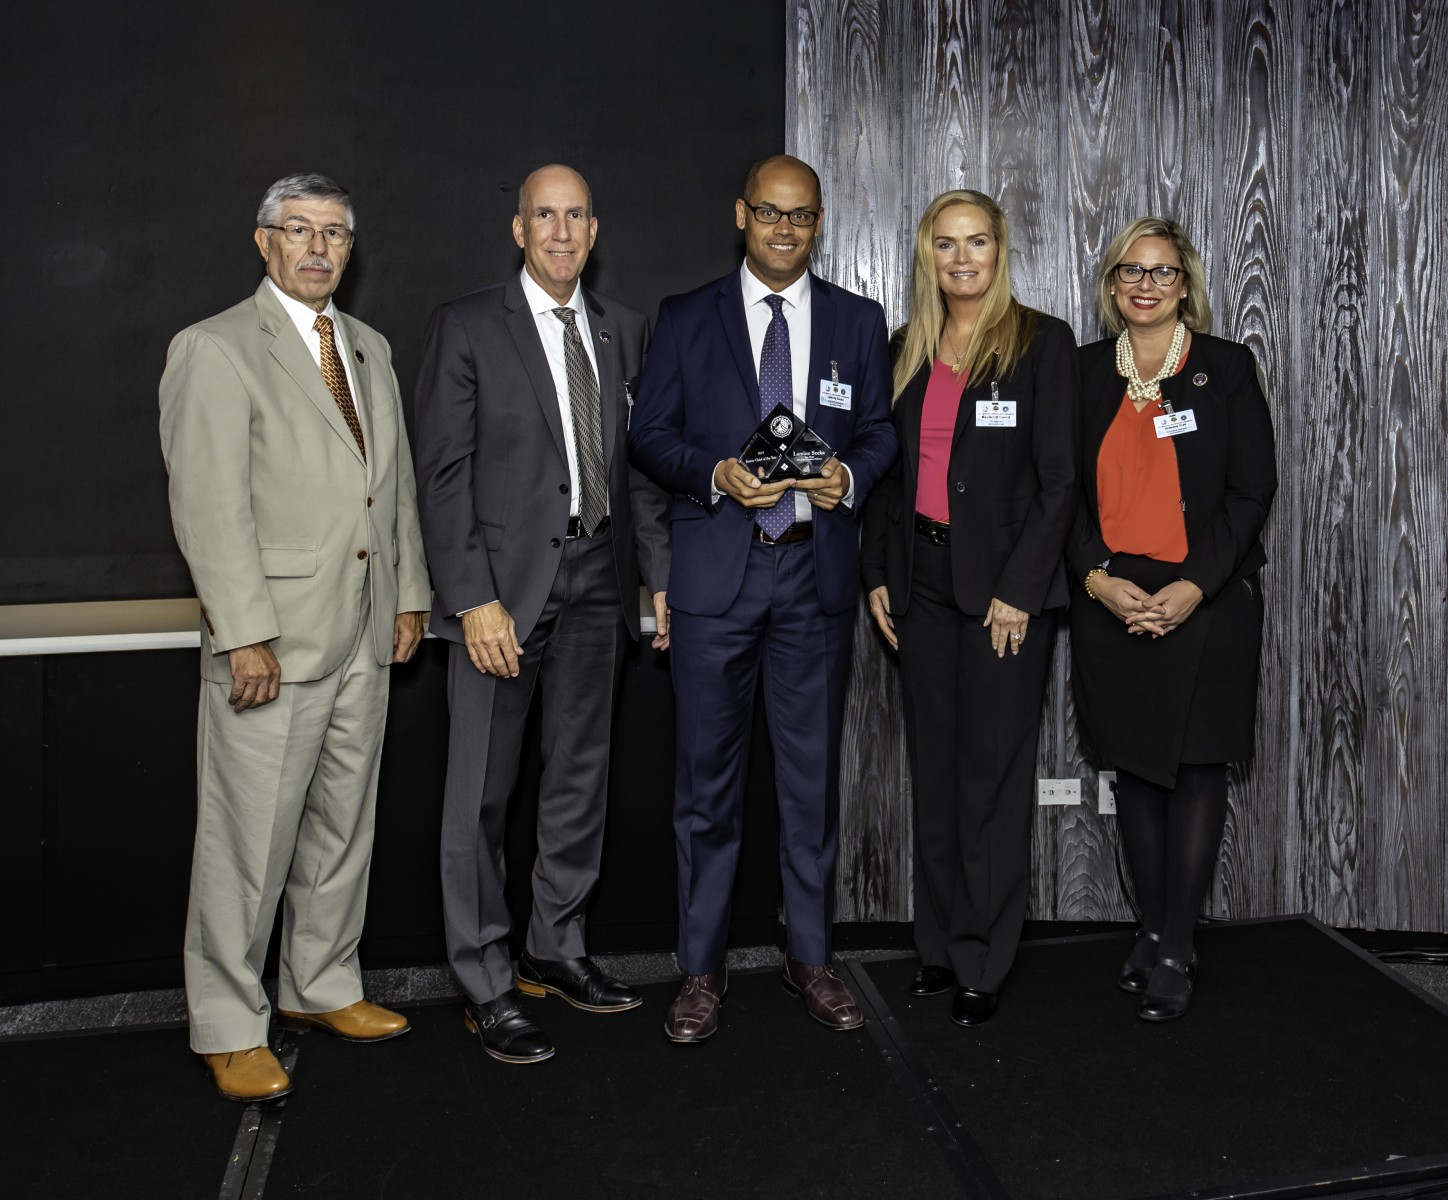 Lamine Secka (center) received an award as national sector chief of the year from InfraGard, the FBI's public-private partnership, last fall.